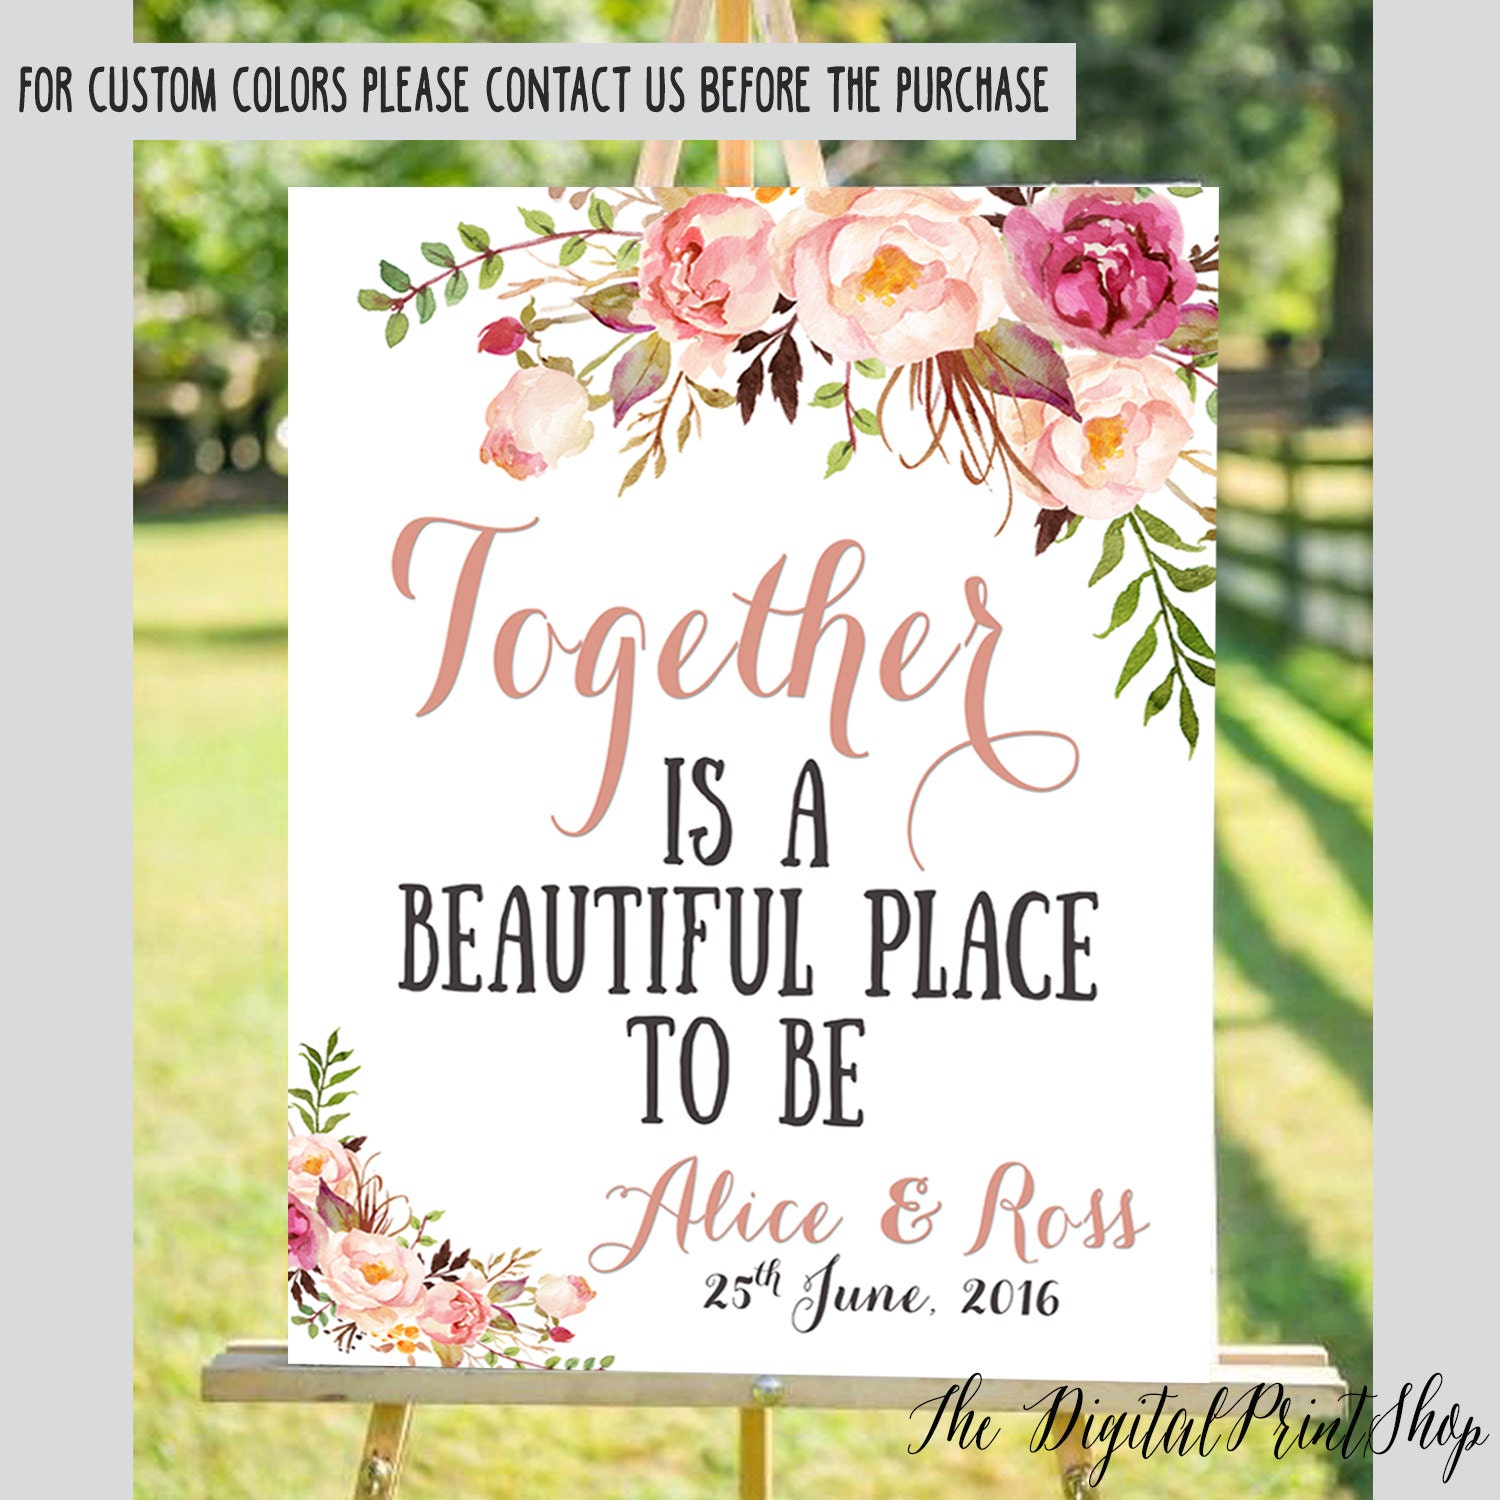 Wedding Welcome Sign Watercolor flowers Rustic Chic Outdoor